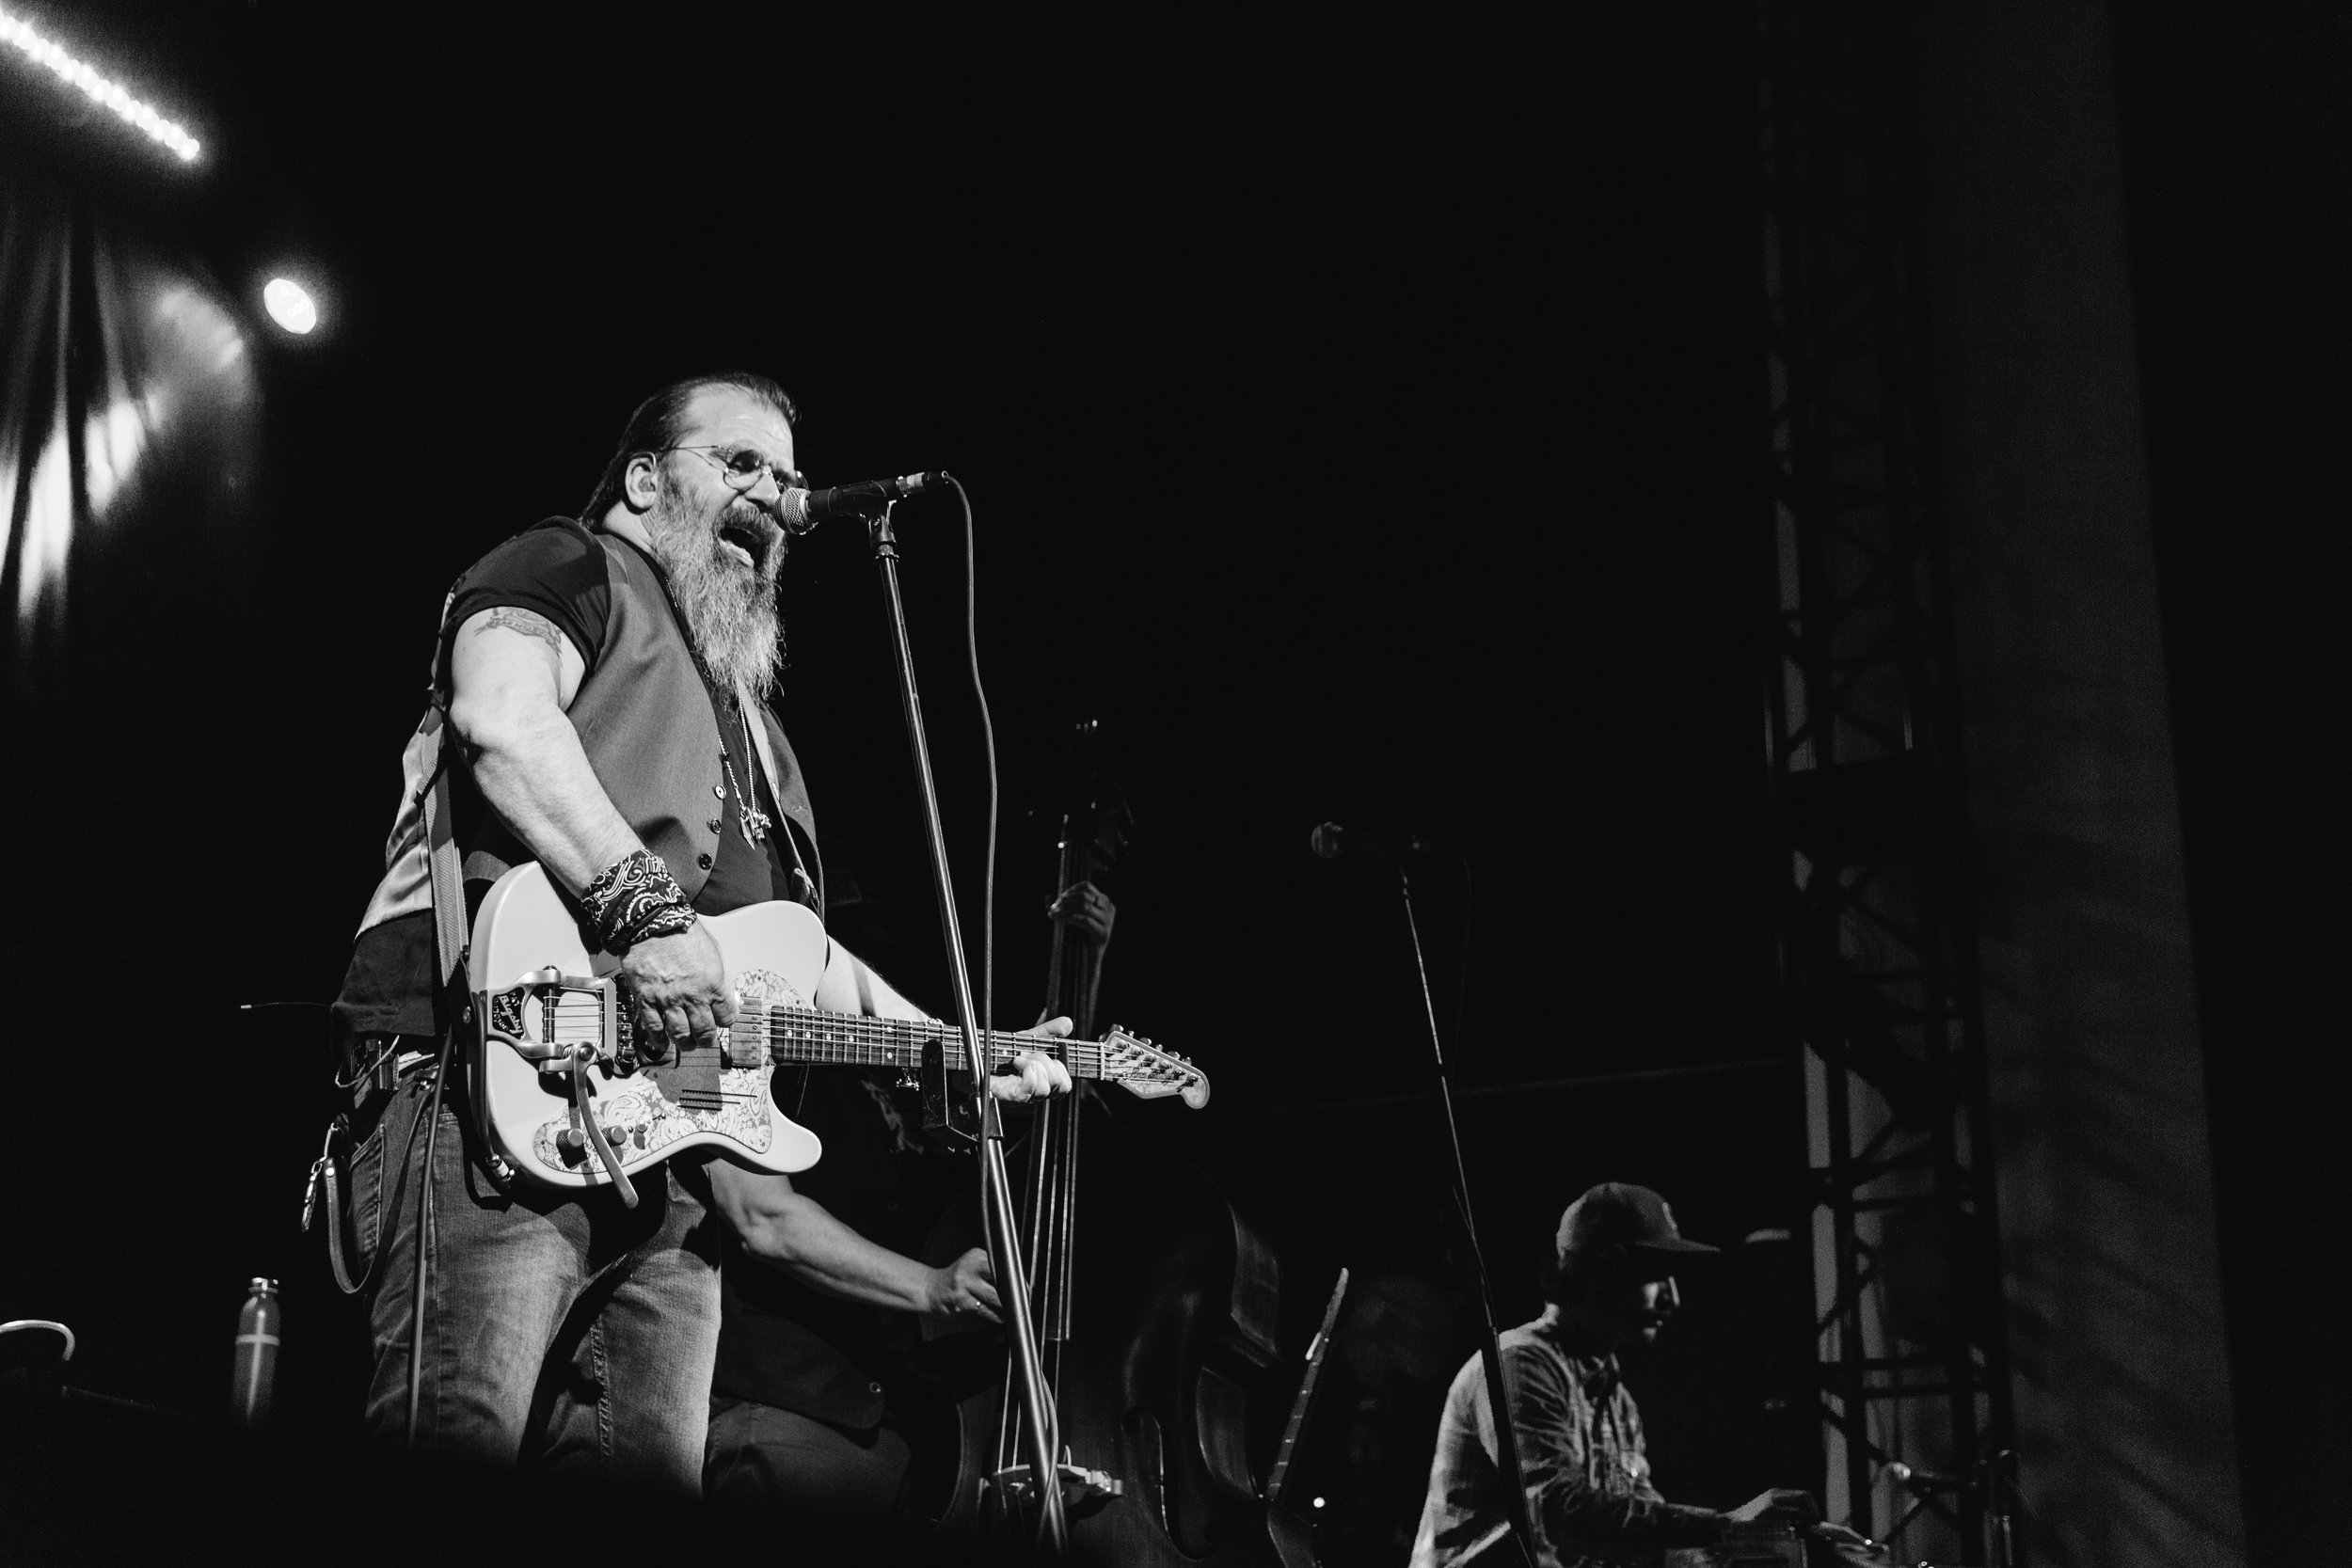 Tower_Steve Earle (21 of 34).jpg